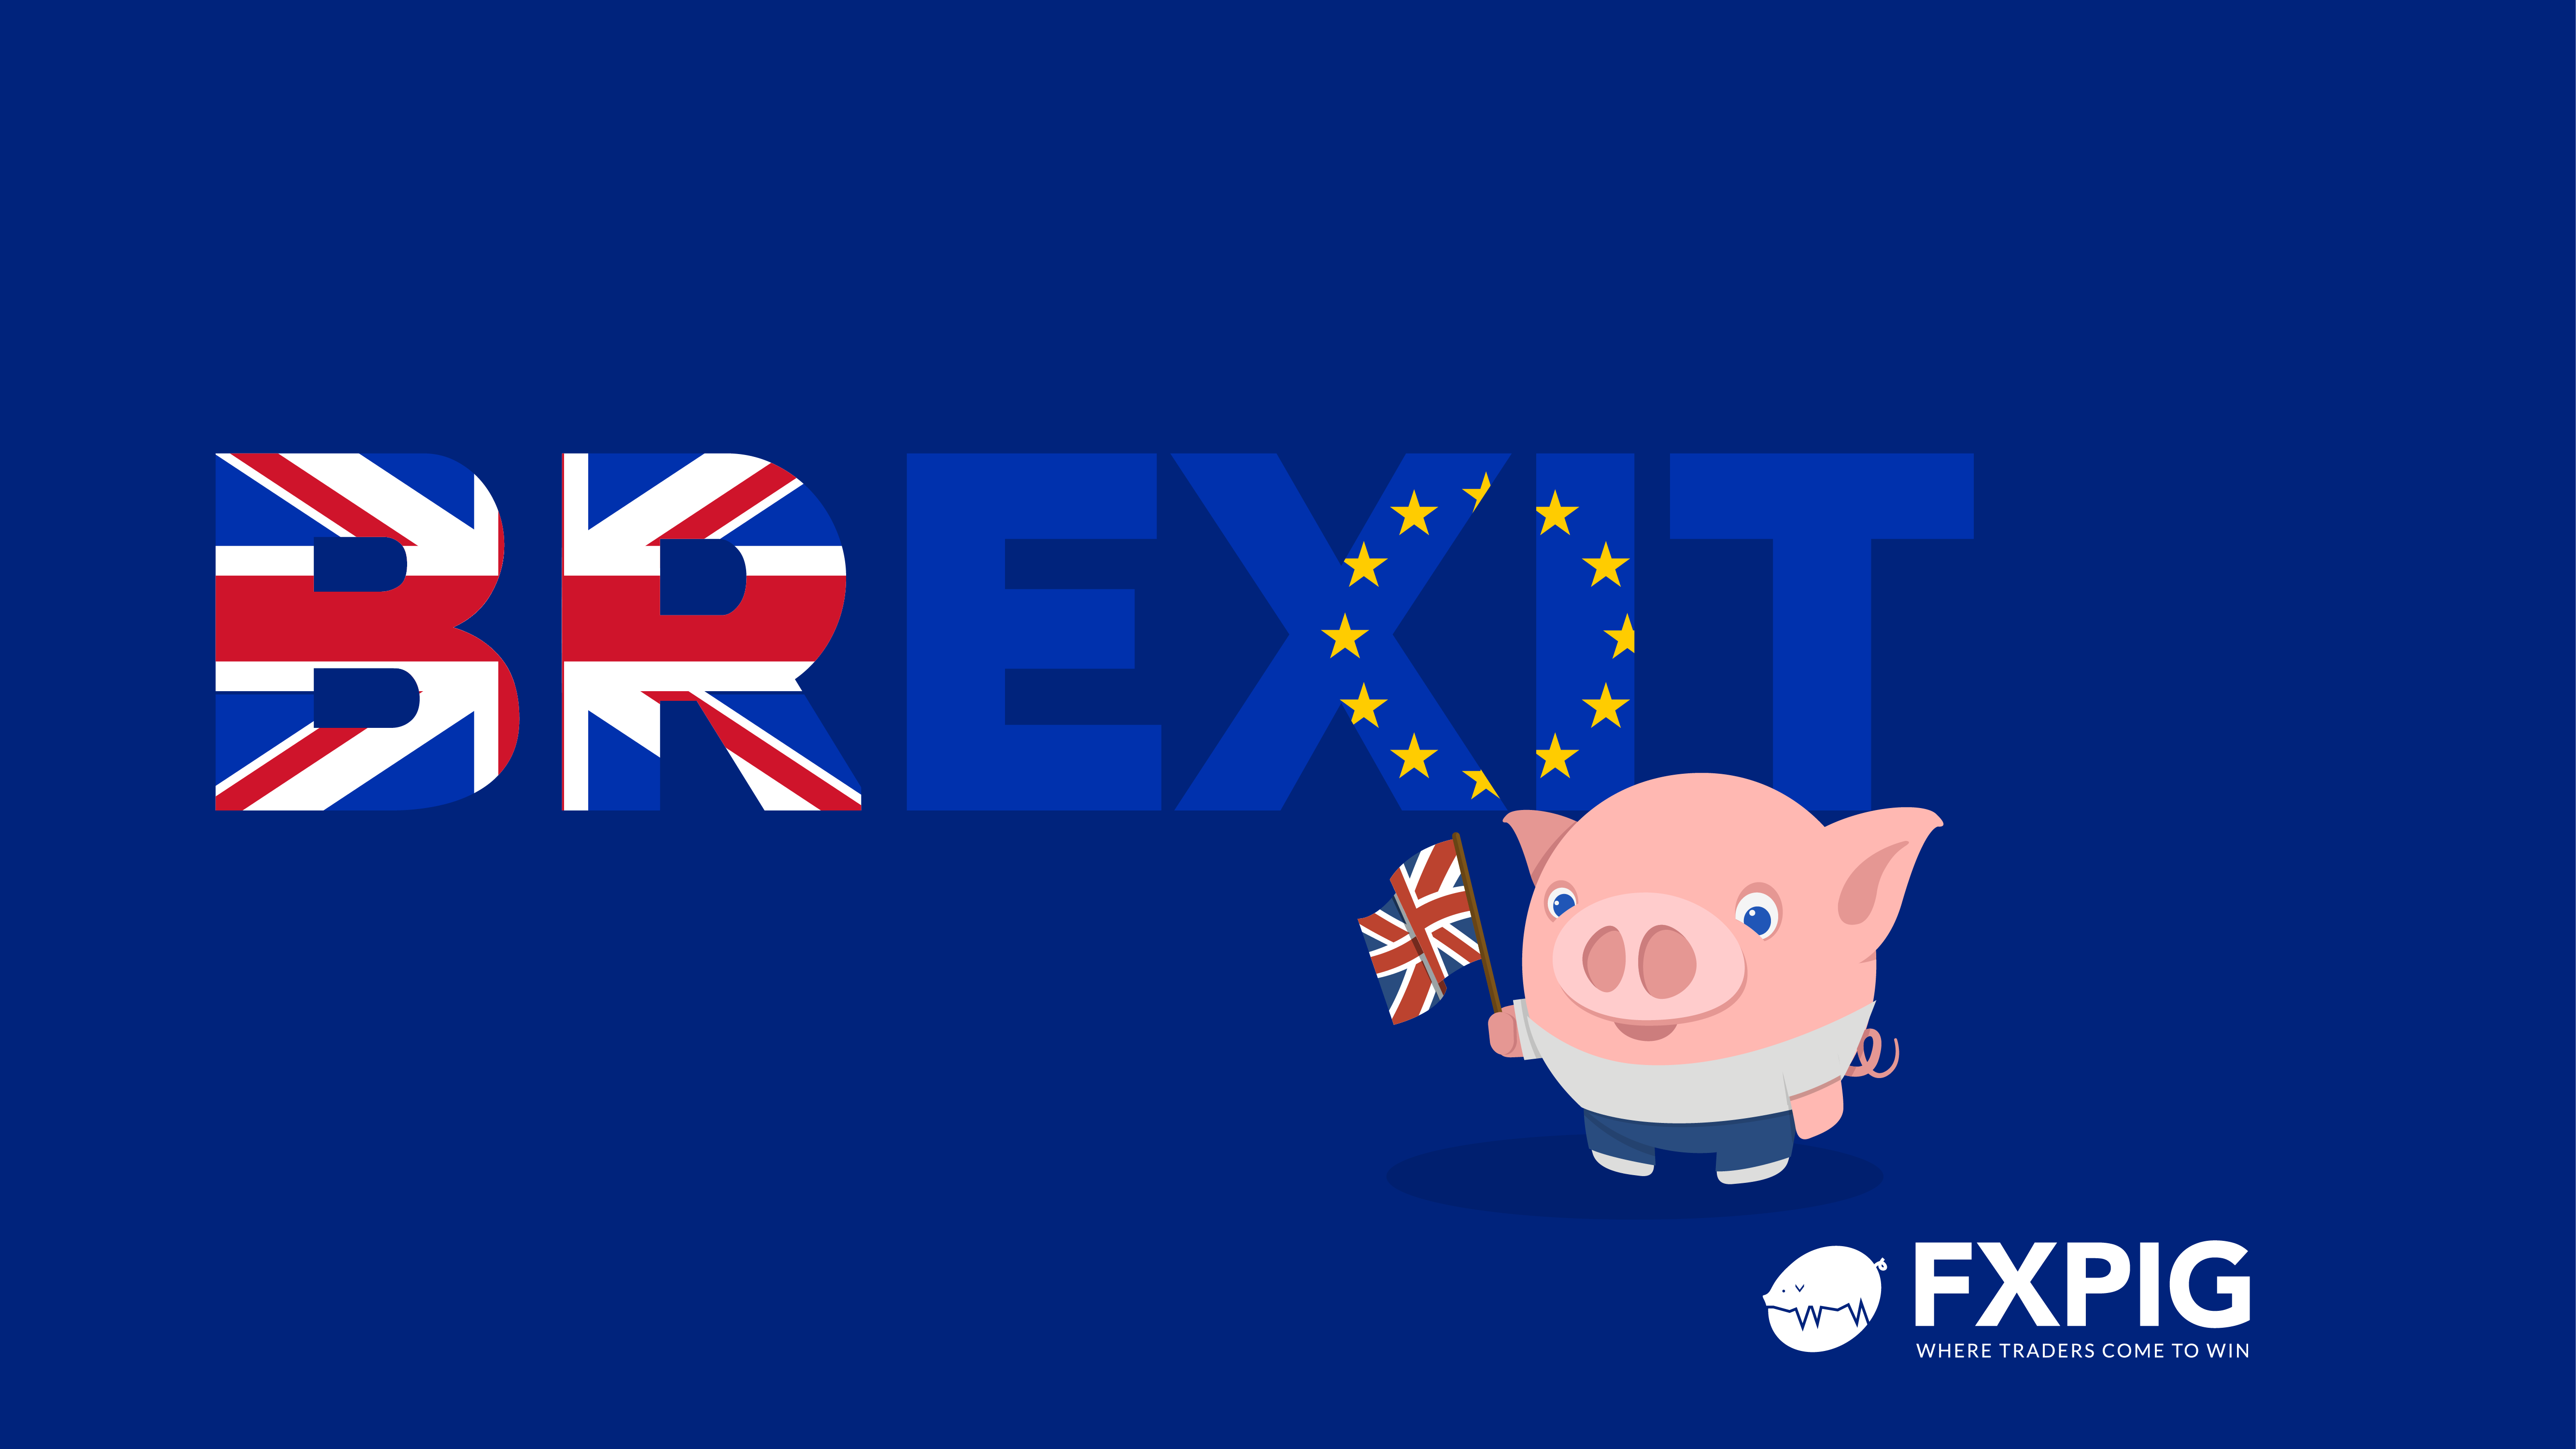 FOREX_Focus-on-Brexit_the-pound-falls_FXPIG